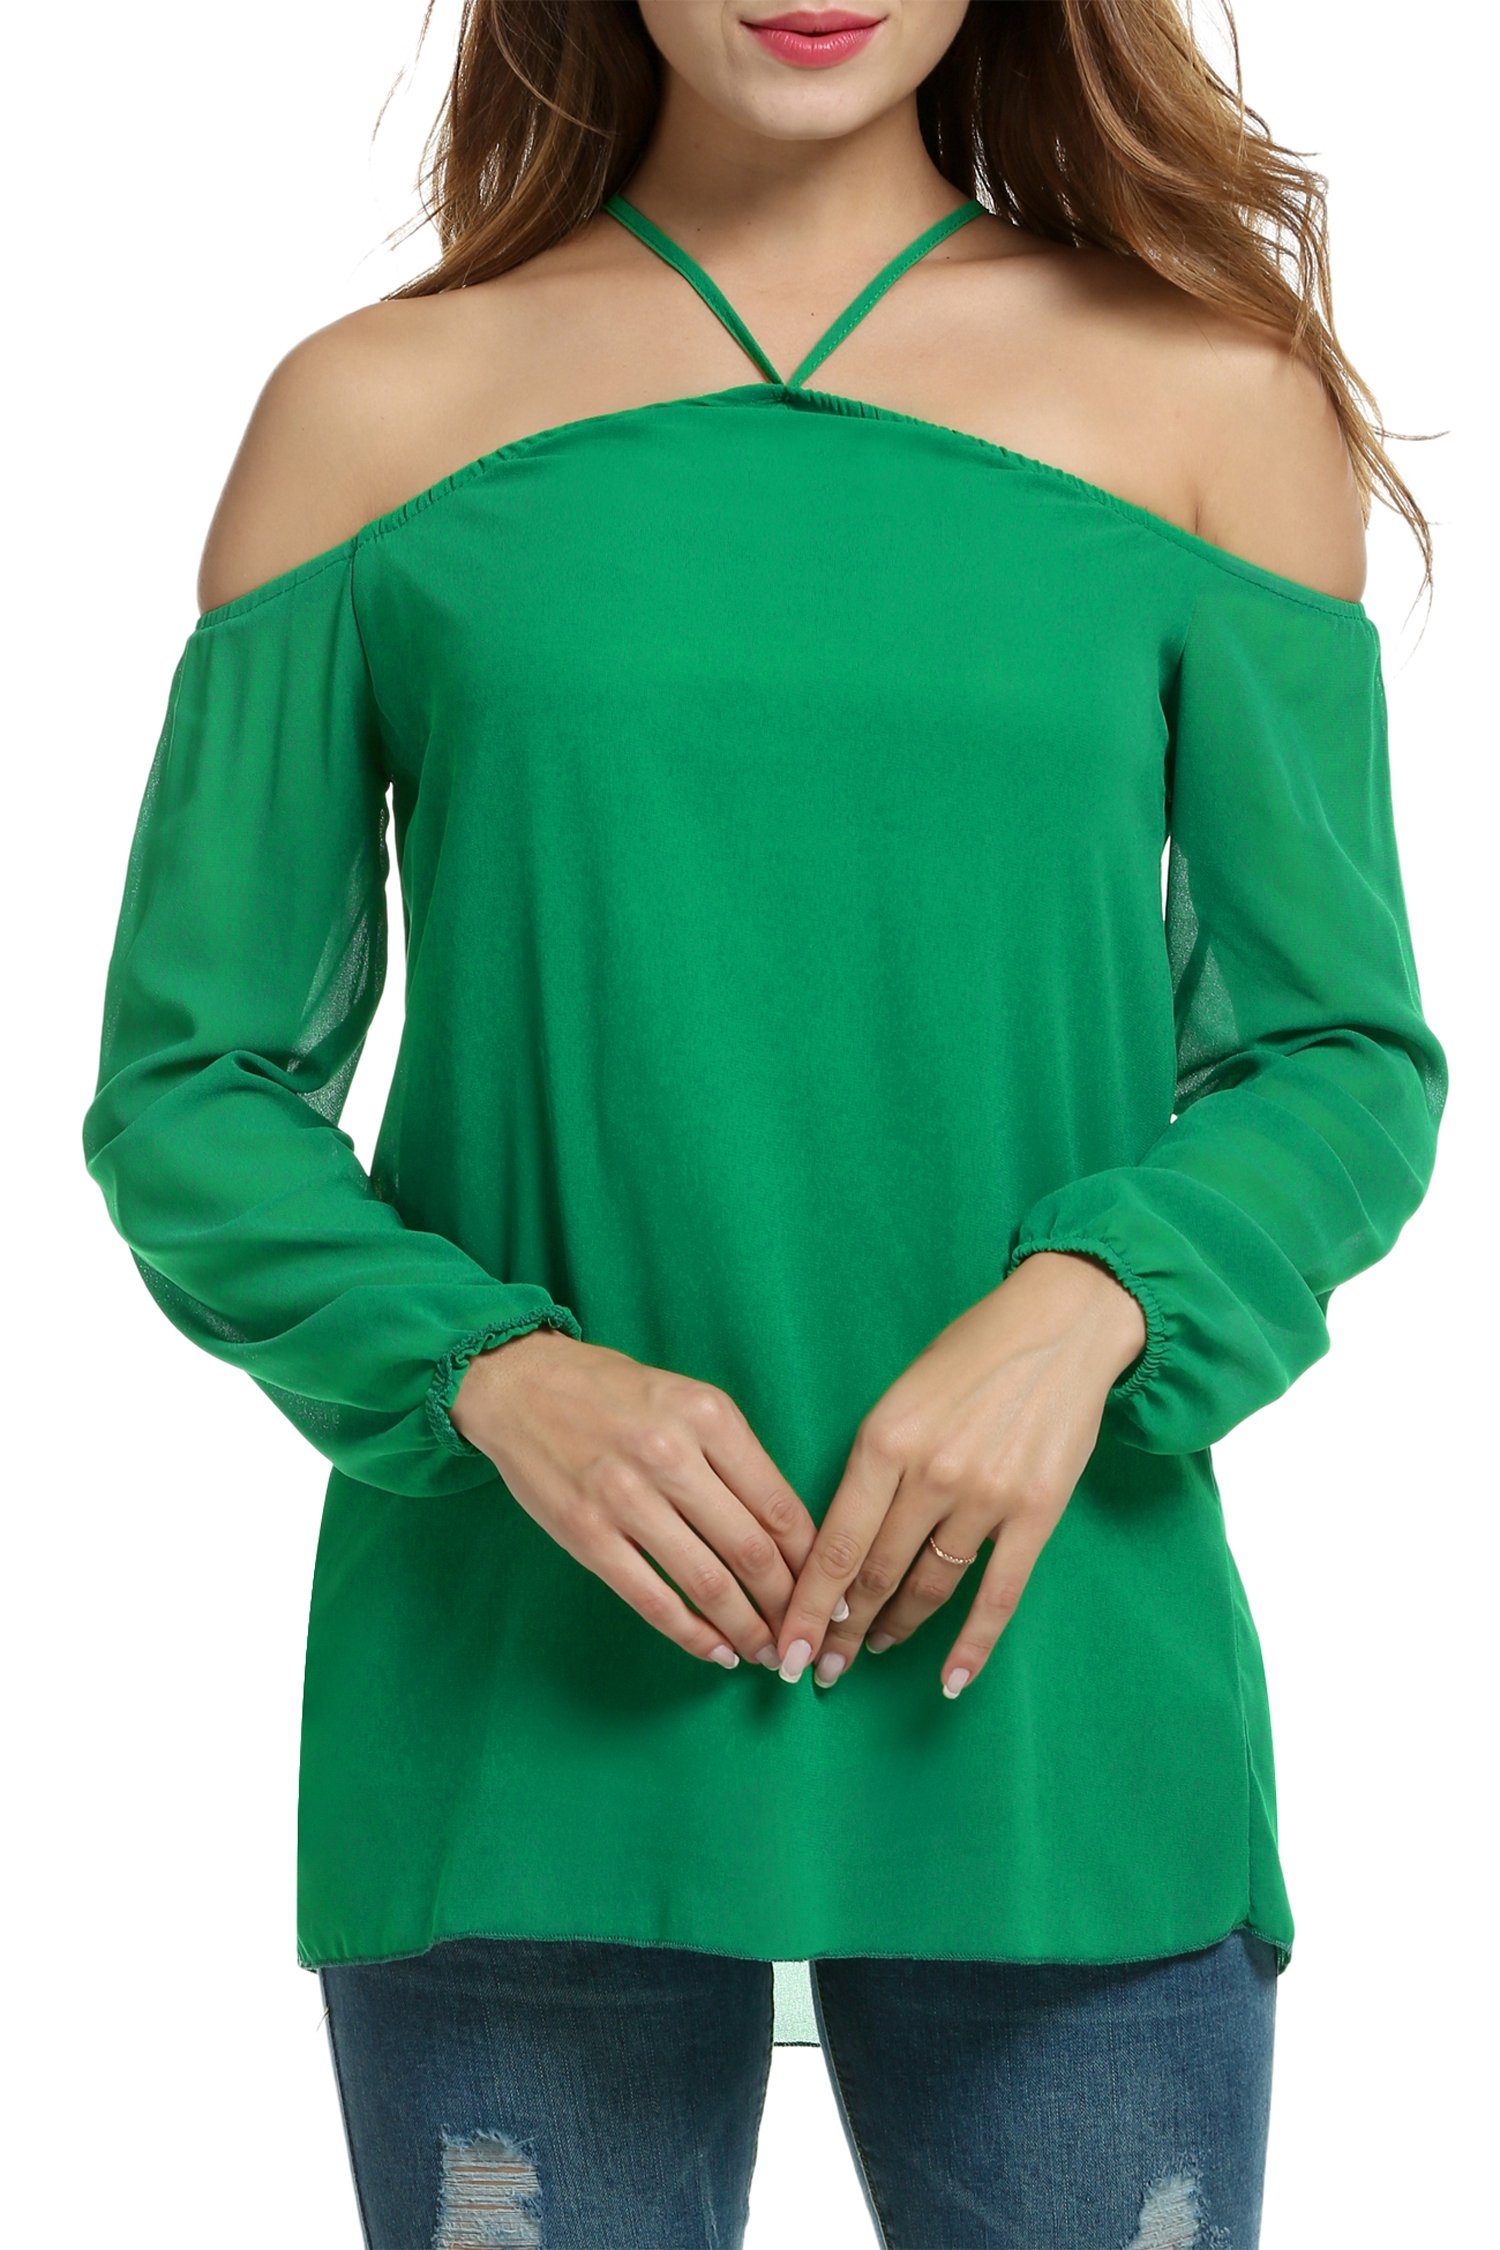 HOTOUCH Women Casual Halter Off Shoulder Blouse Long Sleeve Shirt Tops (Dark Green XL)